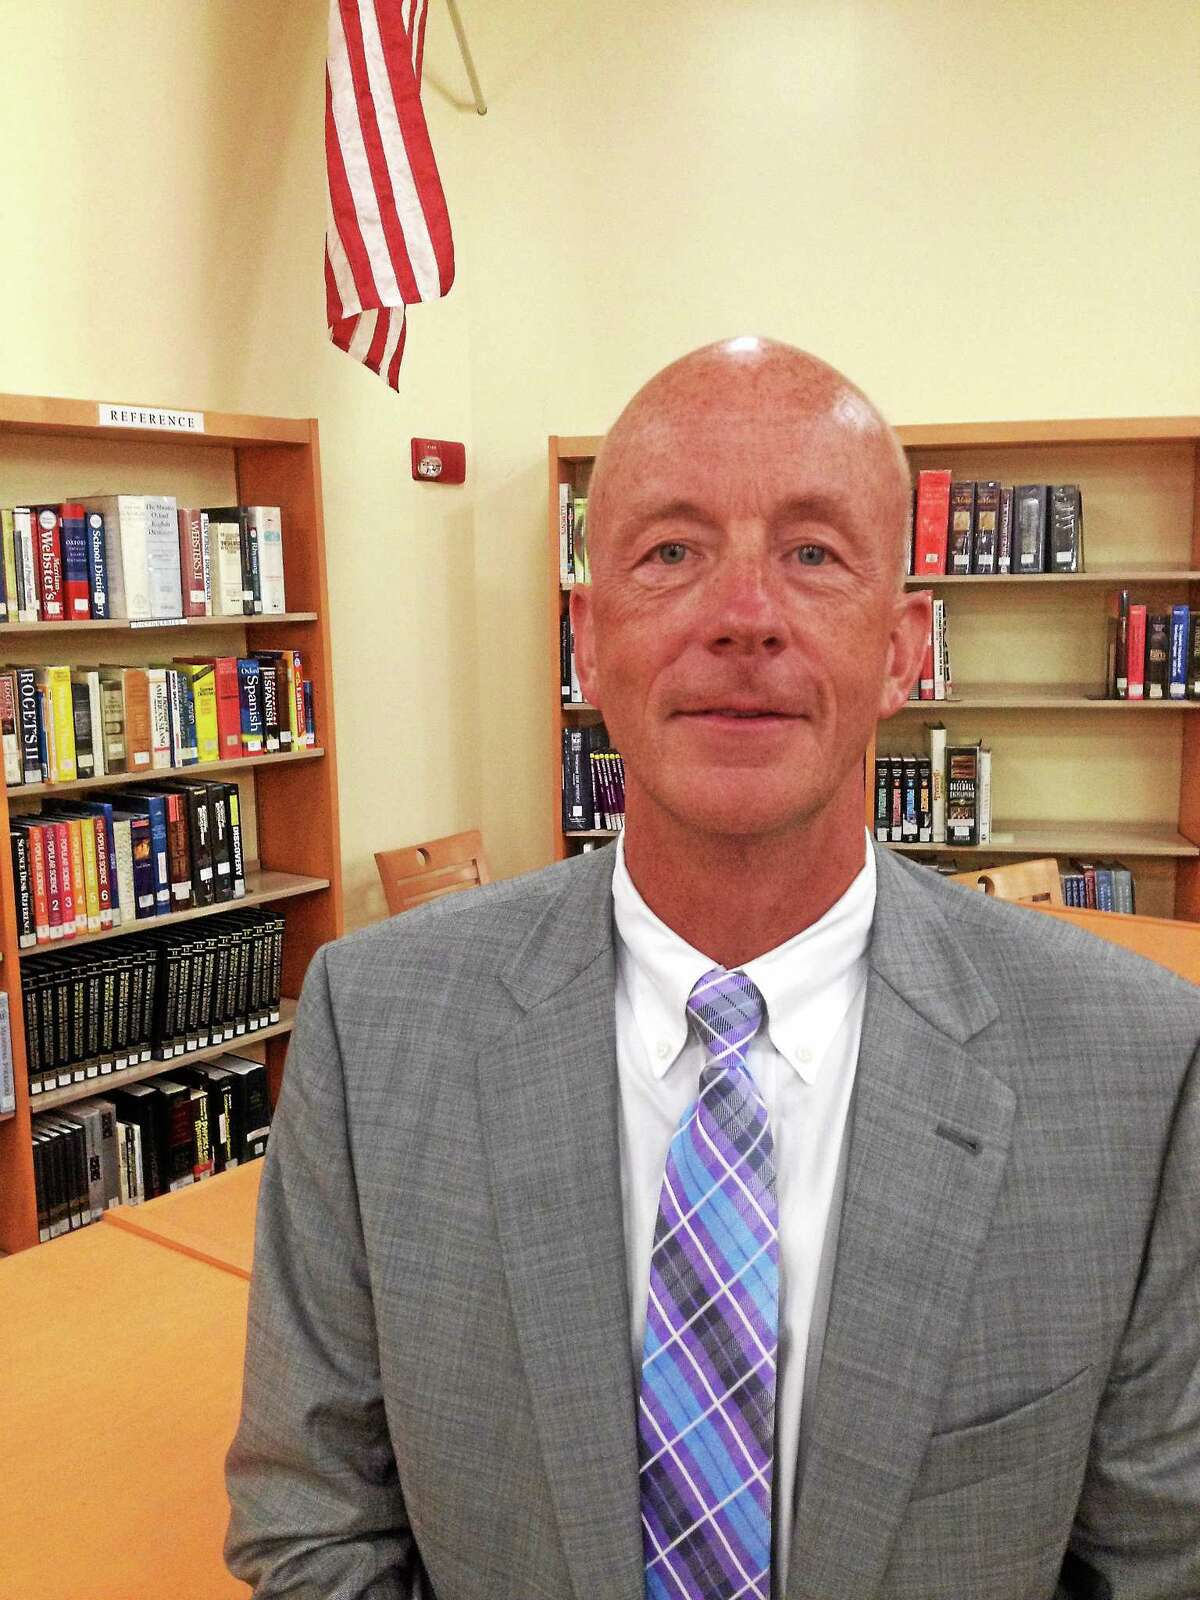 Philip O'Reilly is the schools superintendent in Portland.